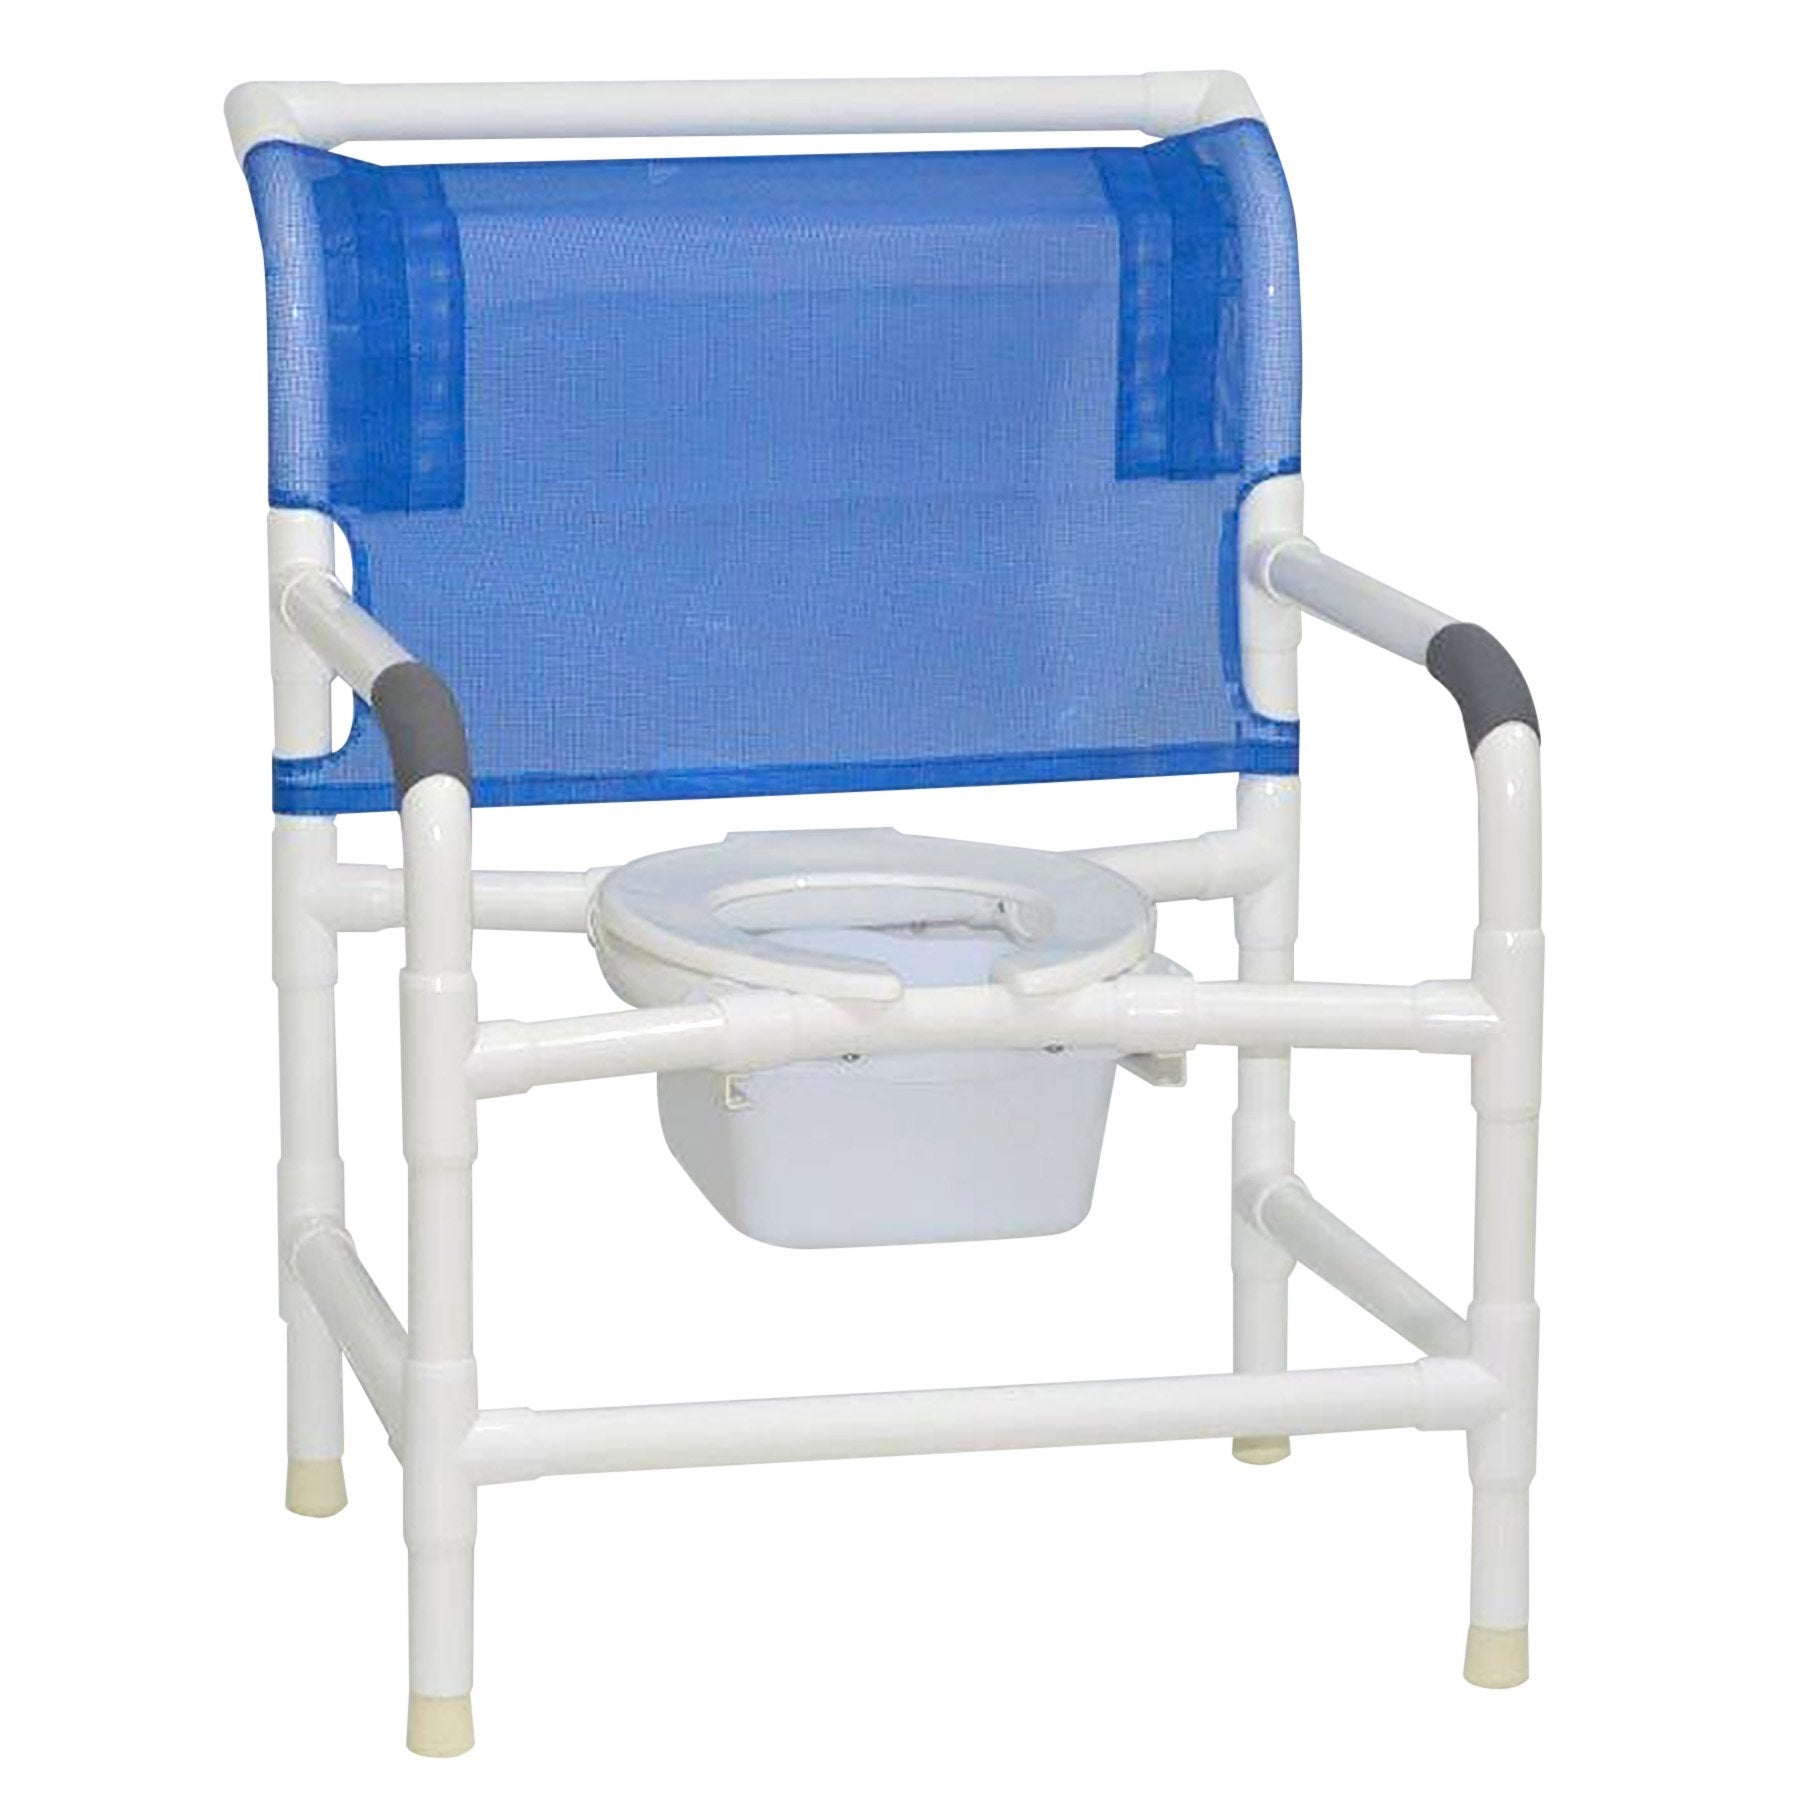 MJM International: Wide Shower Commode Seat With Square Pail - 126-LP-NB